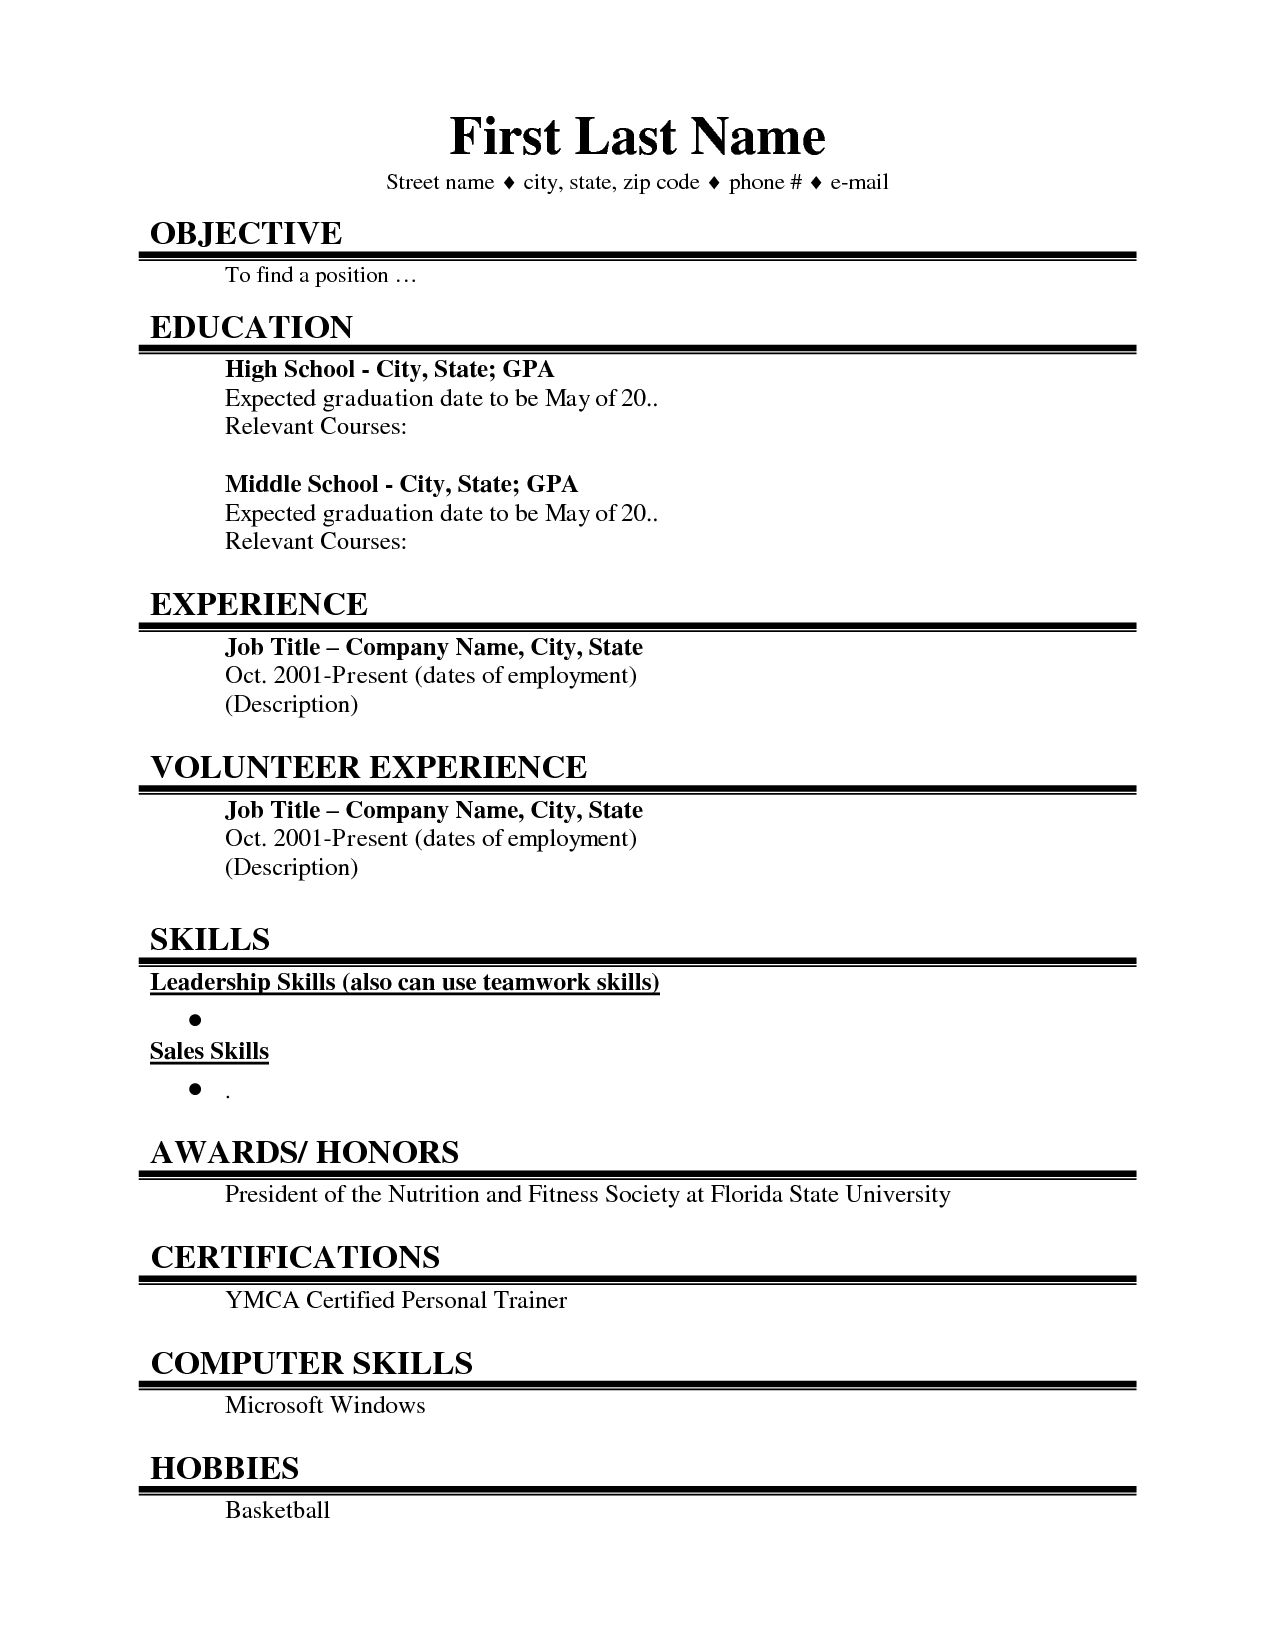 A Sample Resume For A First Job First Job Resume Google Search Resume Pinterest